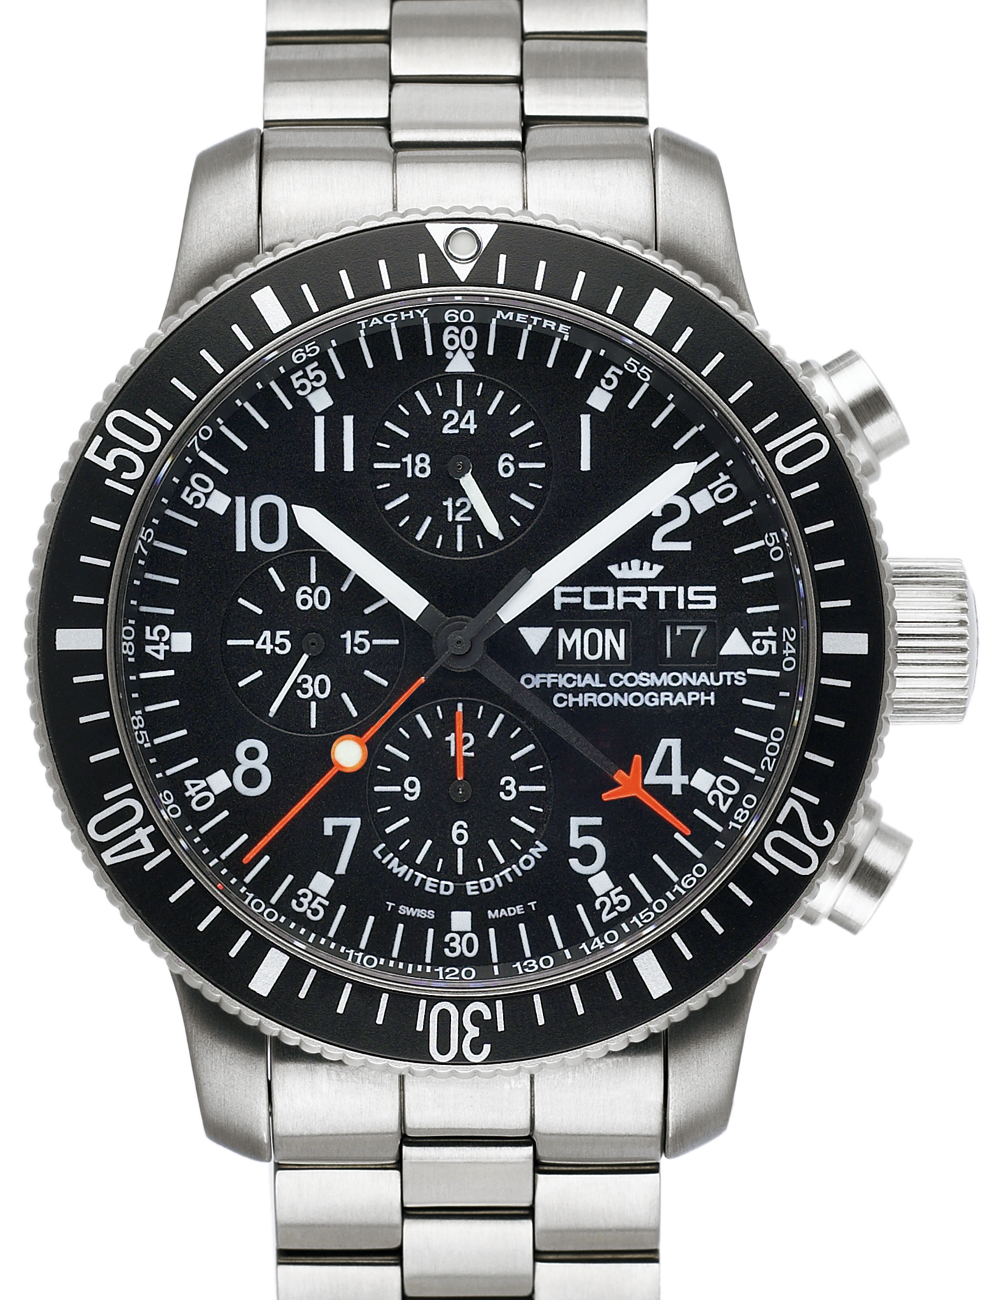 Titan Watches For Men Prices